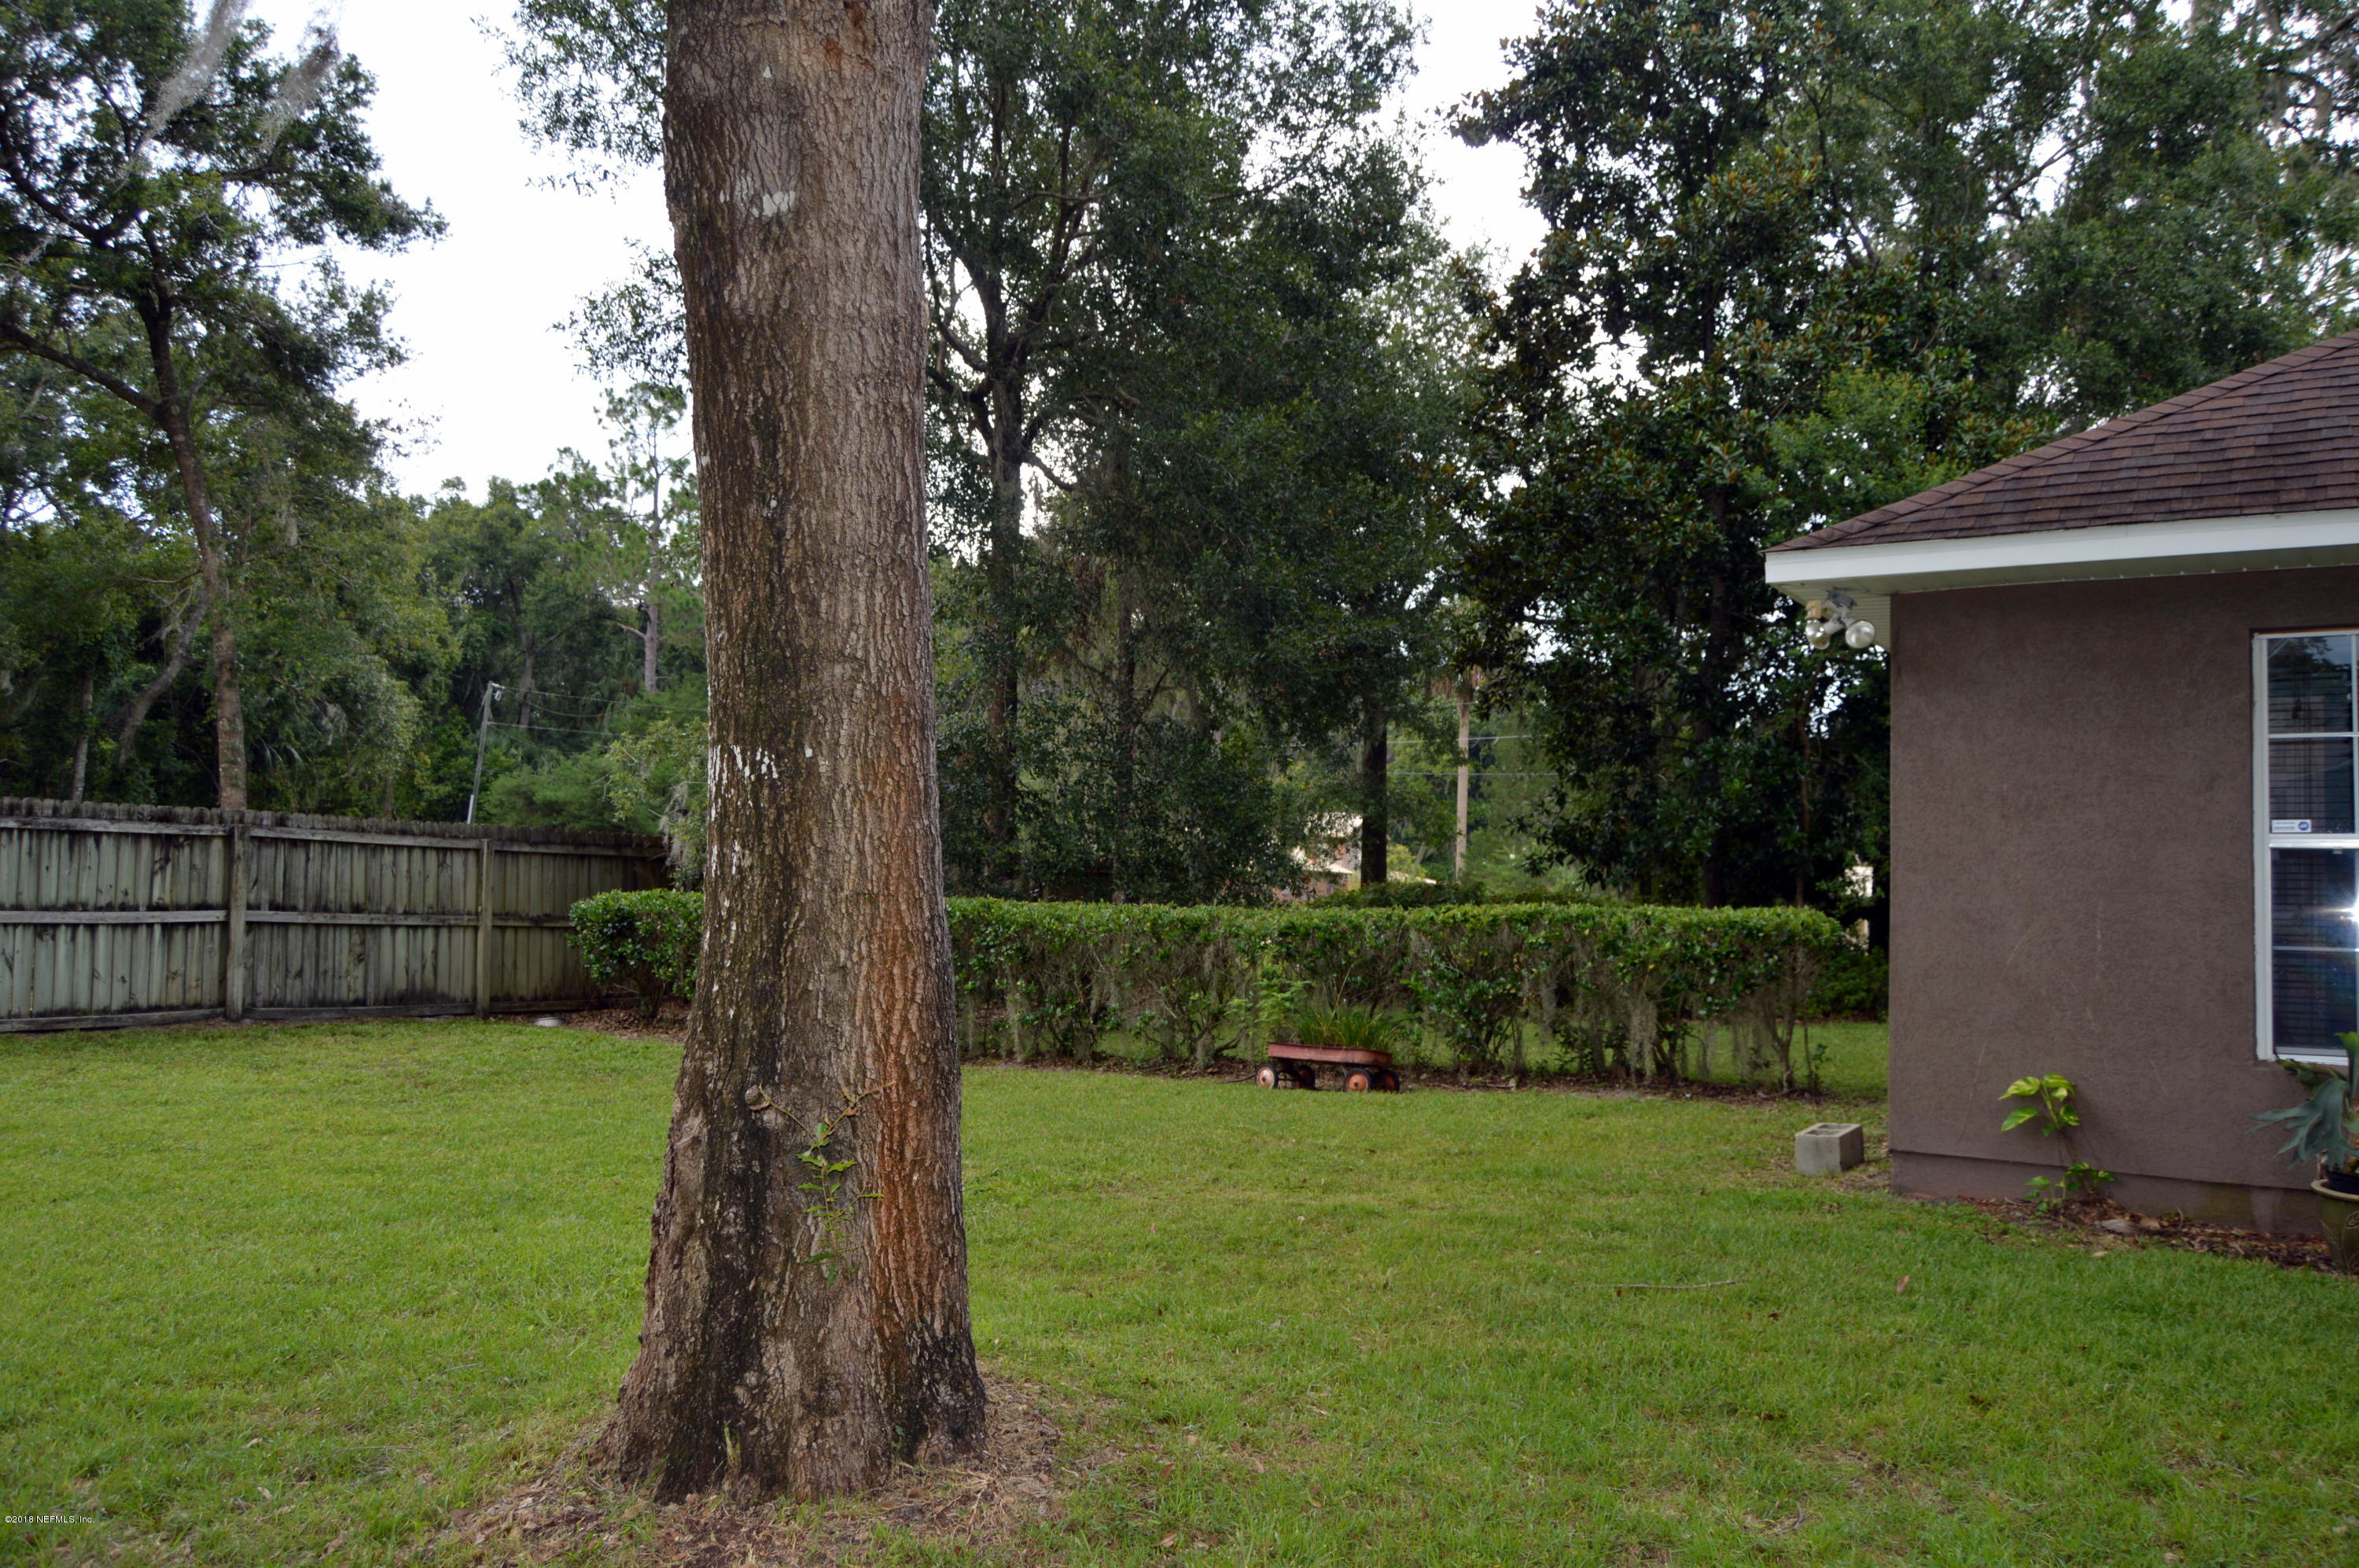 2604 LUNDY, PALATKA, FLORIDA 32177, 3 Bedrooms Bedrooms, ,2 BathroomsBathrooms,Residential - single family,For sale,LUNDY,947078